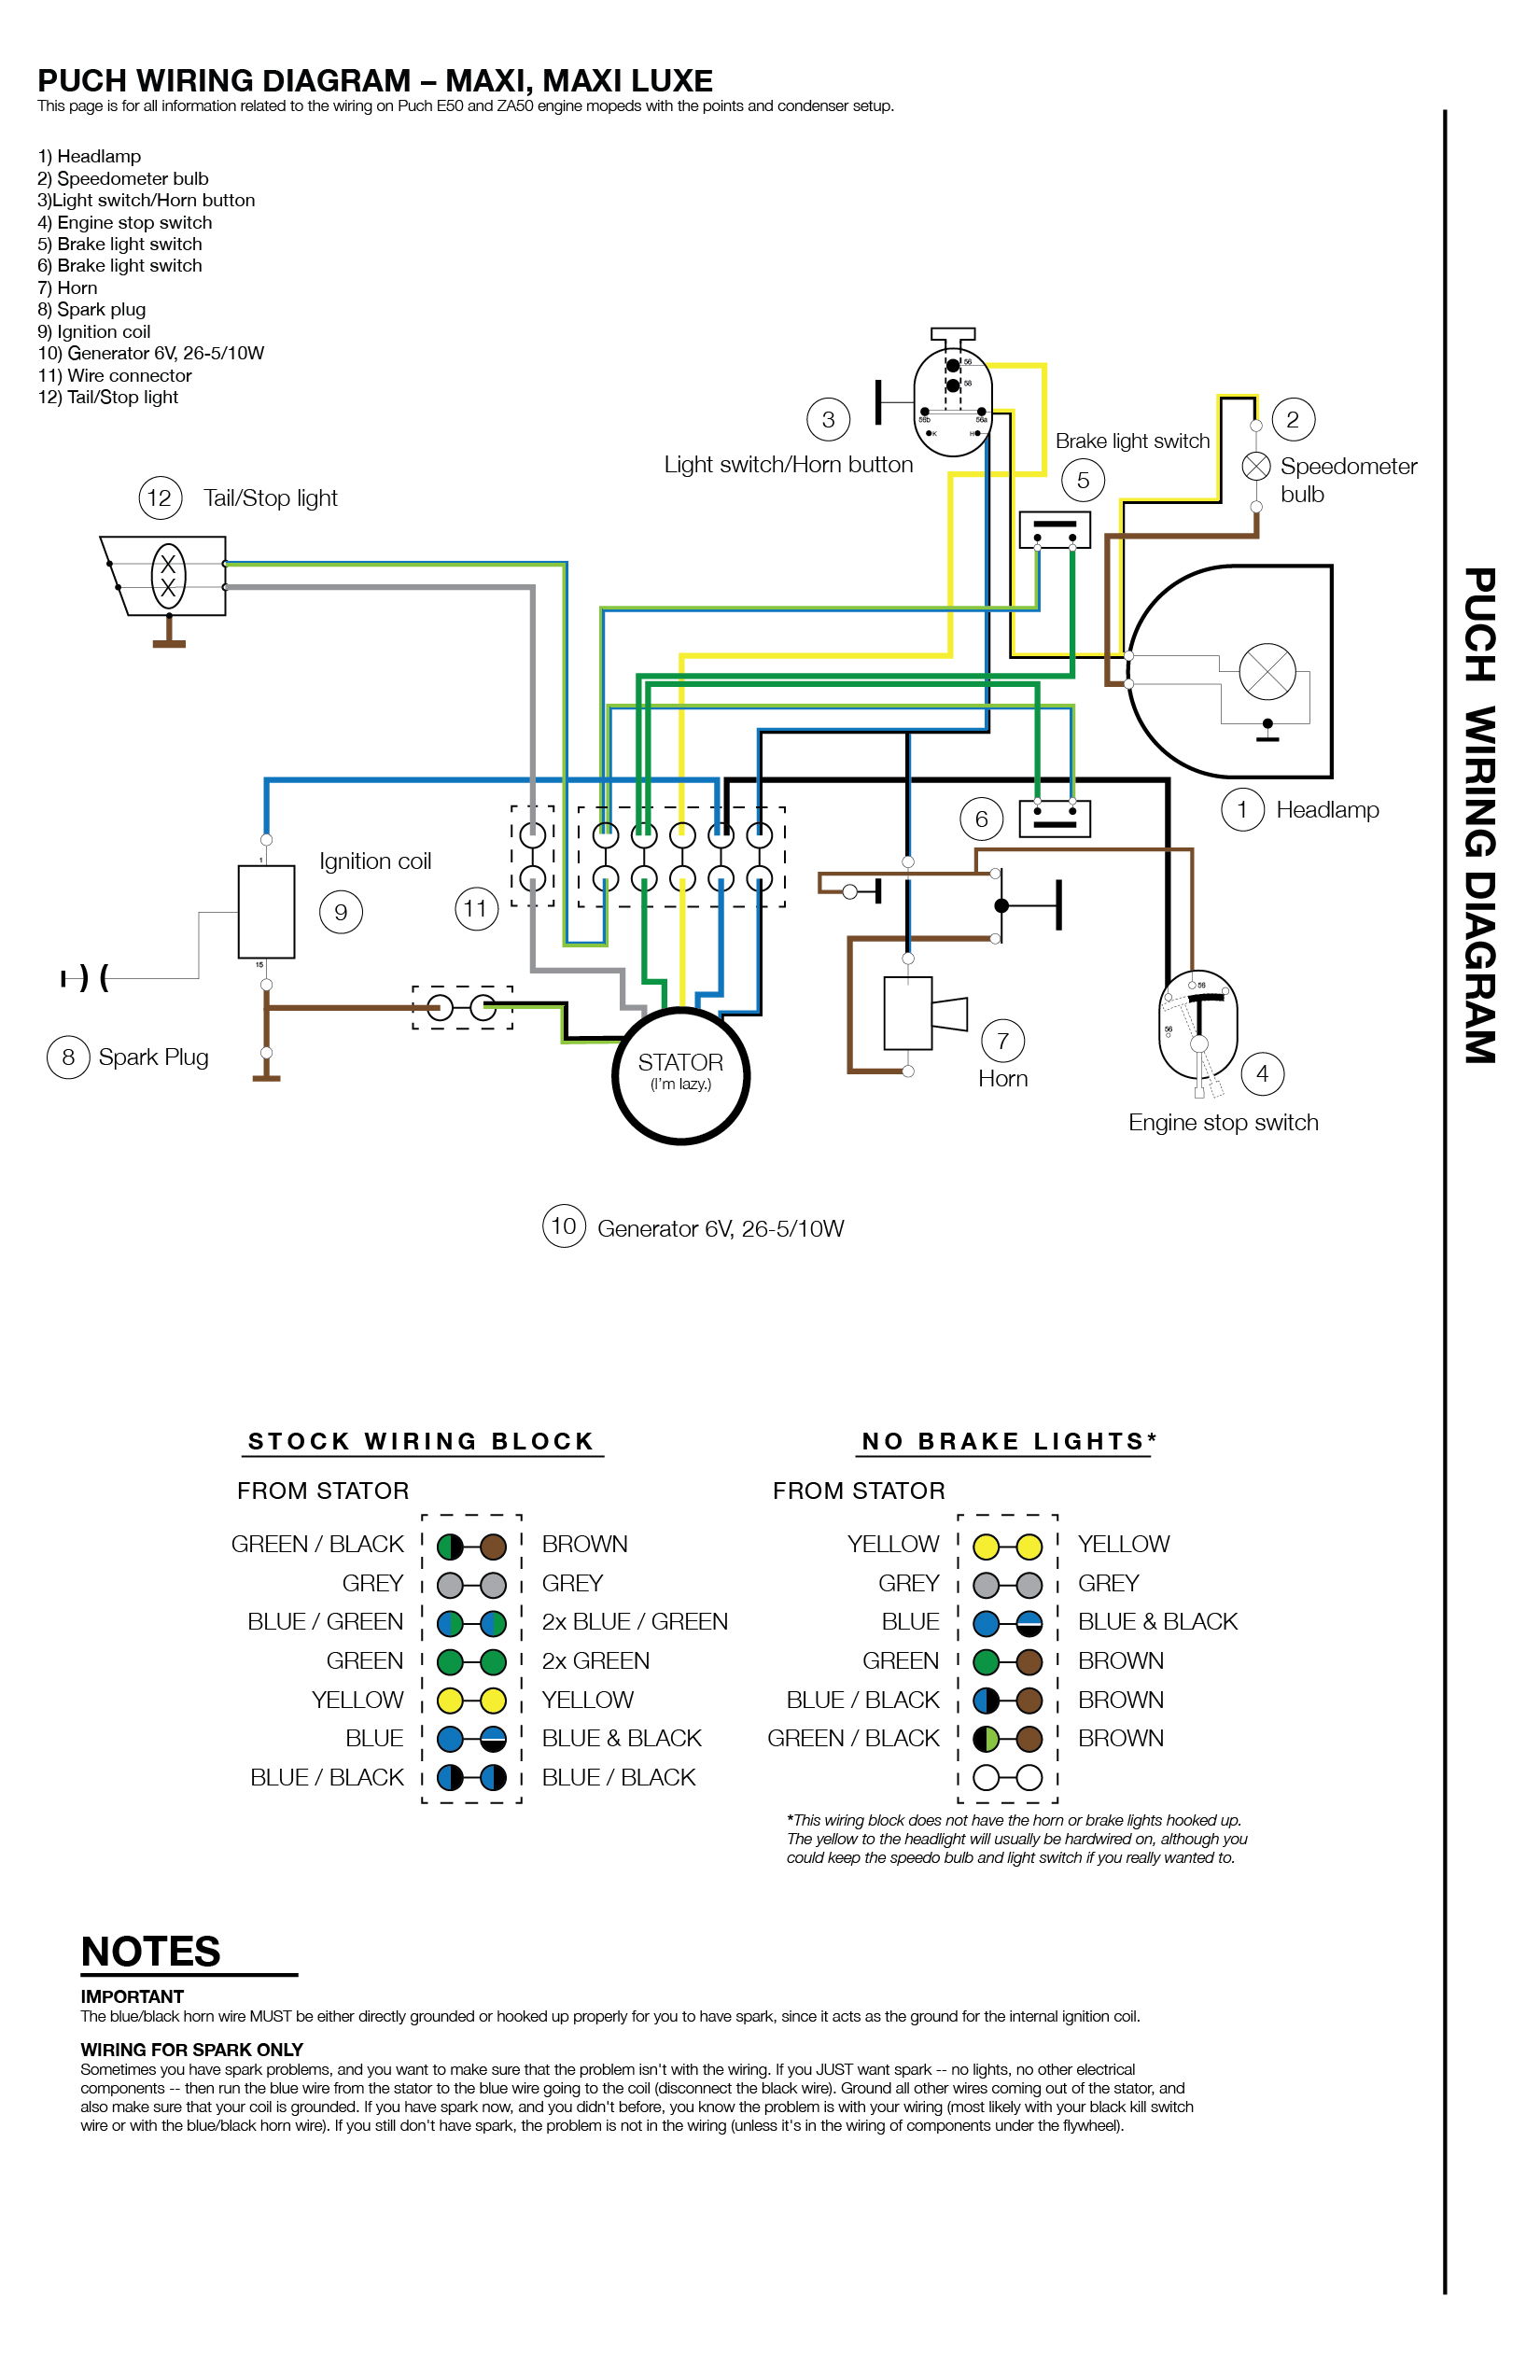 1995 Ktm Stator Wiring Diagram - Technical Diagrams Homemade Generator Stator Wiring Diagram on